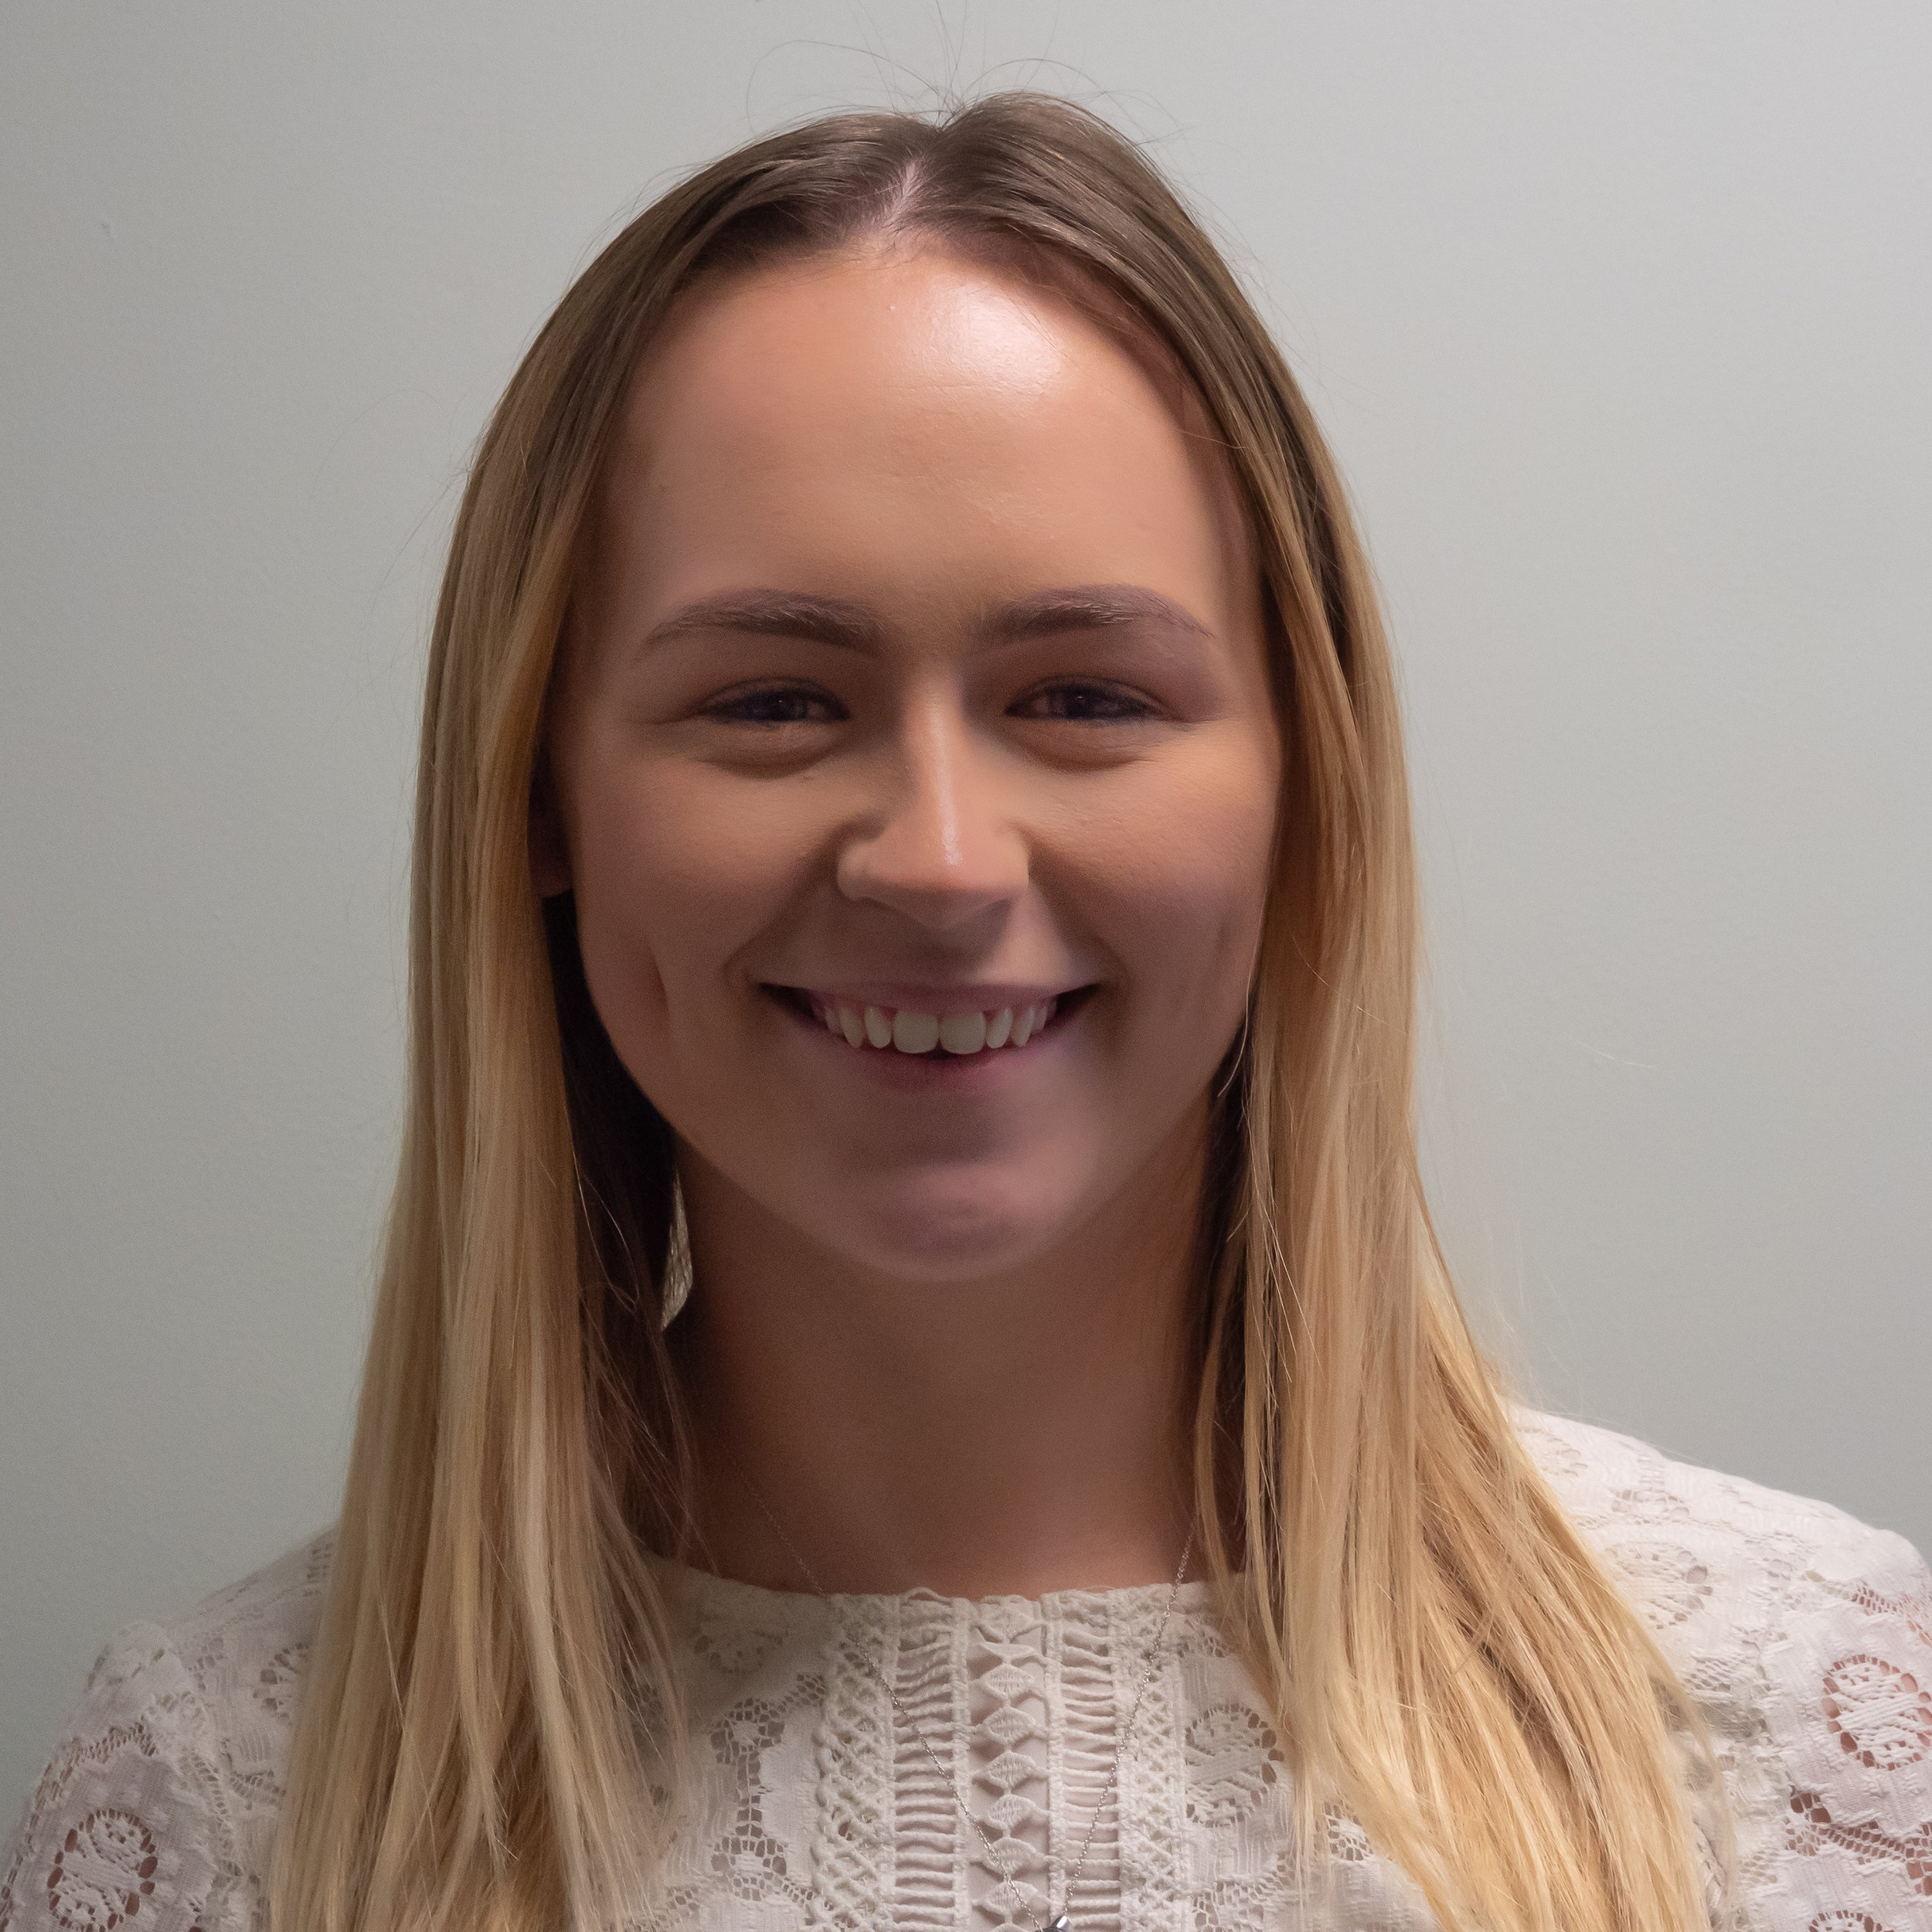 Mollie Moment, Locality Administrator - I joined Yorkshire Health Partners in January 2019 as the Locality Administrator for the Improving Access Service.From 13th February 2017 I was a Registration Authority Specialist with eMBED Health Consortium where over the last two years I gained experience in communicating with all levels of NHS staff, developing a knowledge of the clinical systems from an access right perspective and general administrative skills. This experience will allow me in my new role to work closely with general practice.